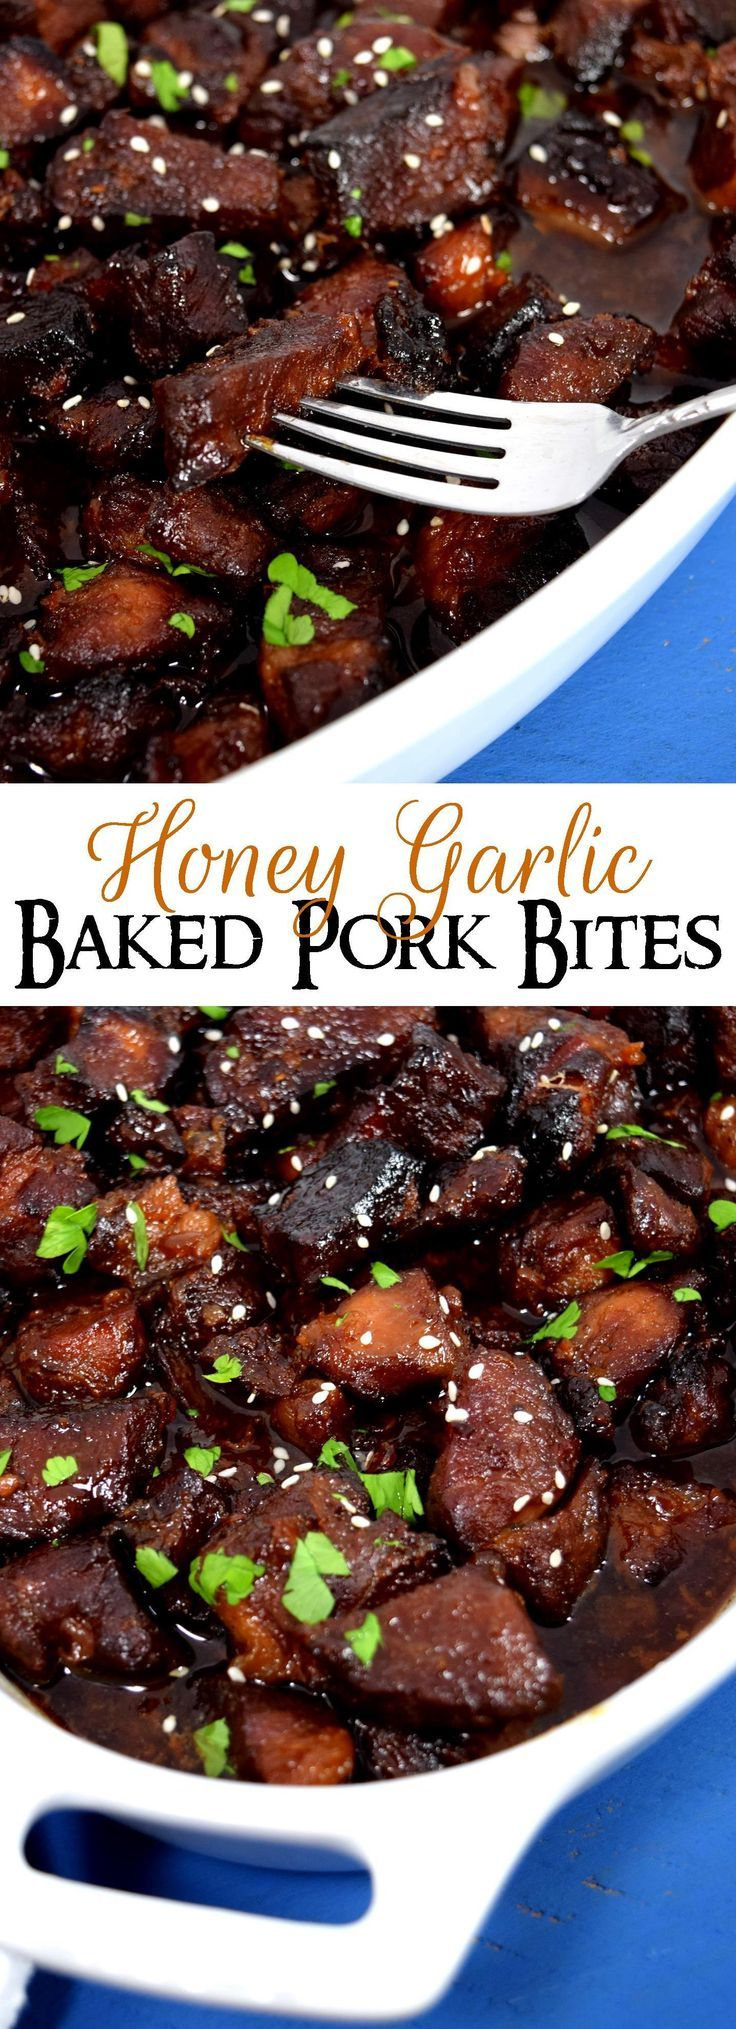 Honey Garlic Baked Pork Bites | A delicious and healthy new spin on ribs. Tasty honey and garlic flavors mix perfectly in this dish!